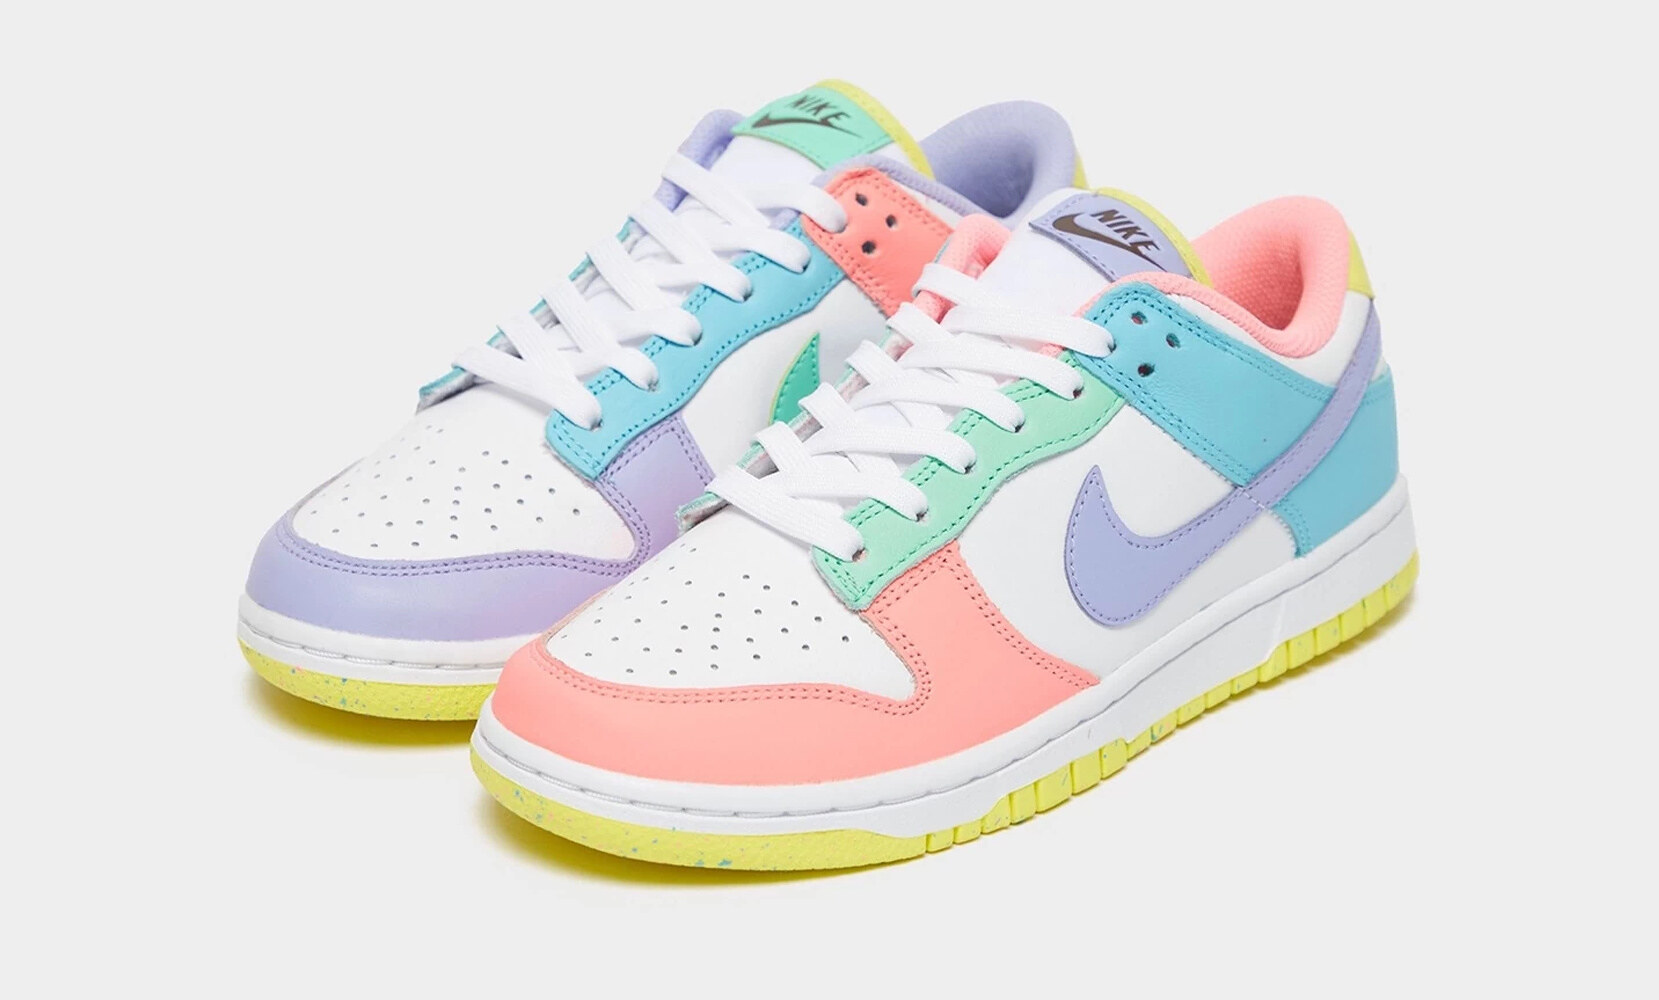 nike-dunk-low-womens-light-soft-pink-ghost-lime-ice.jpg